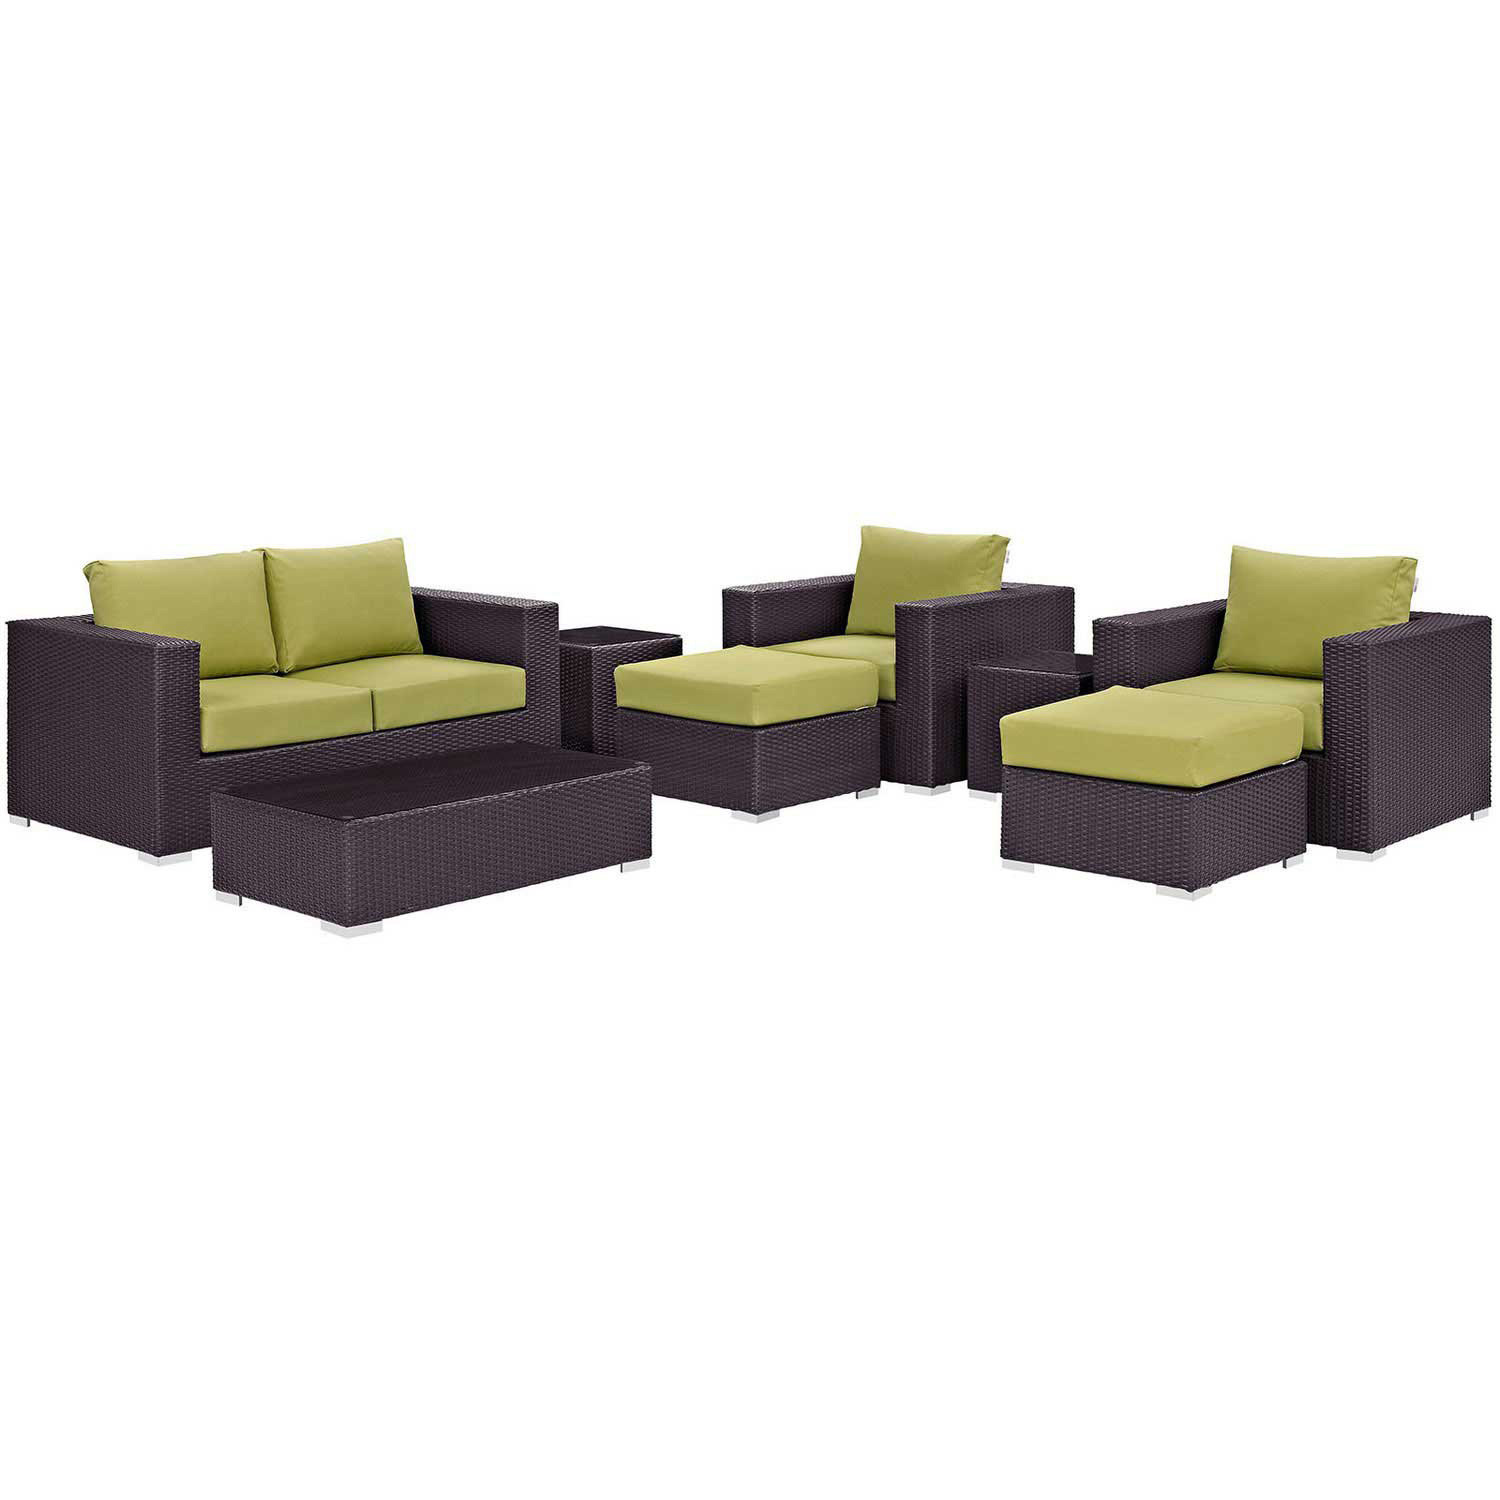 Modway Convene 8 Piece Outdoor Patio Sofa Set - Espresso Peridot